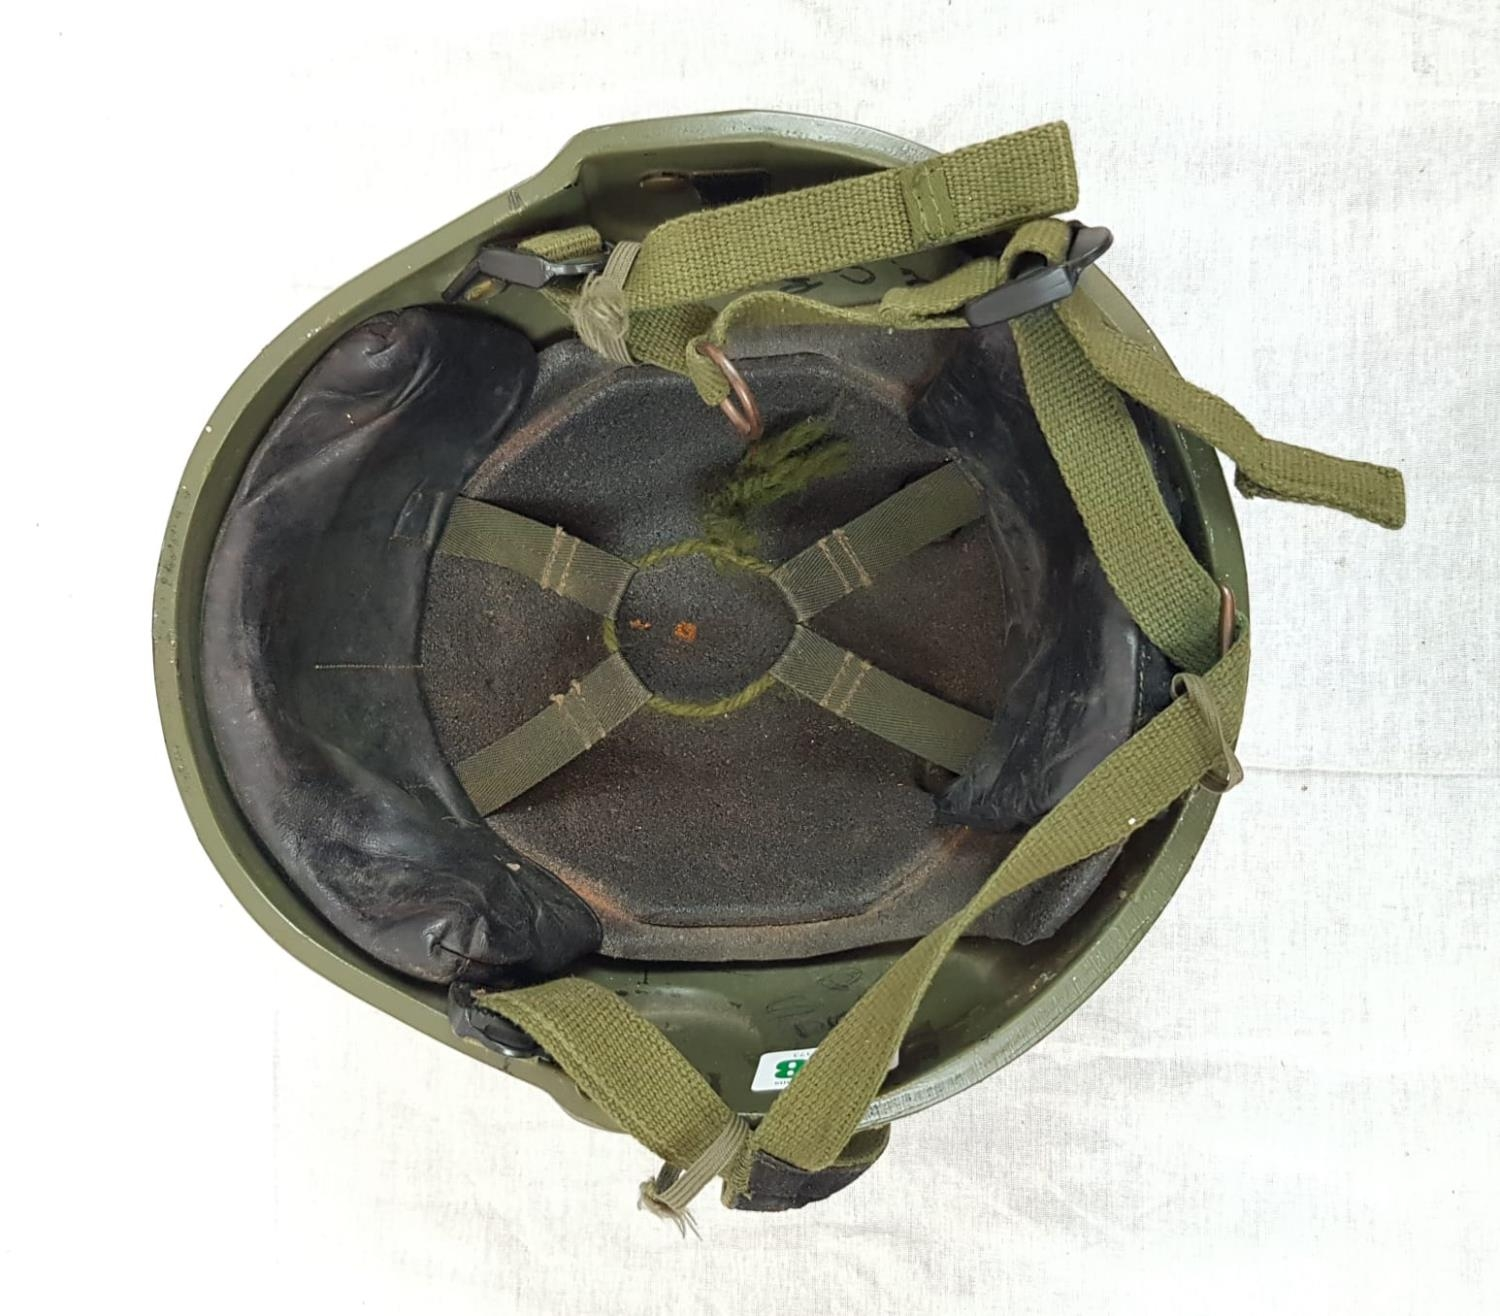 Military Issue Ballistic HELMET previously issued to Pte Cargill, 4 Platoon (as marked on the - Image 3 of 4